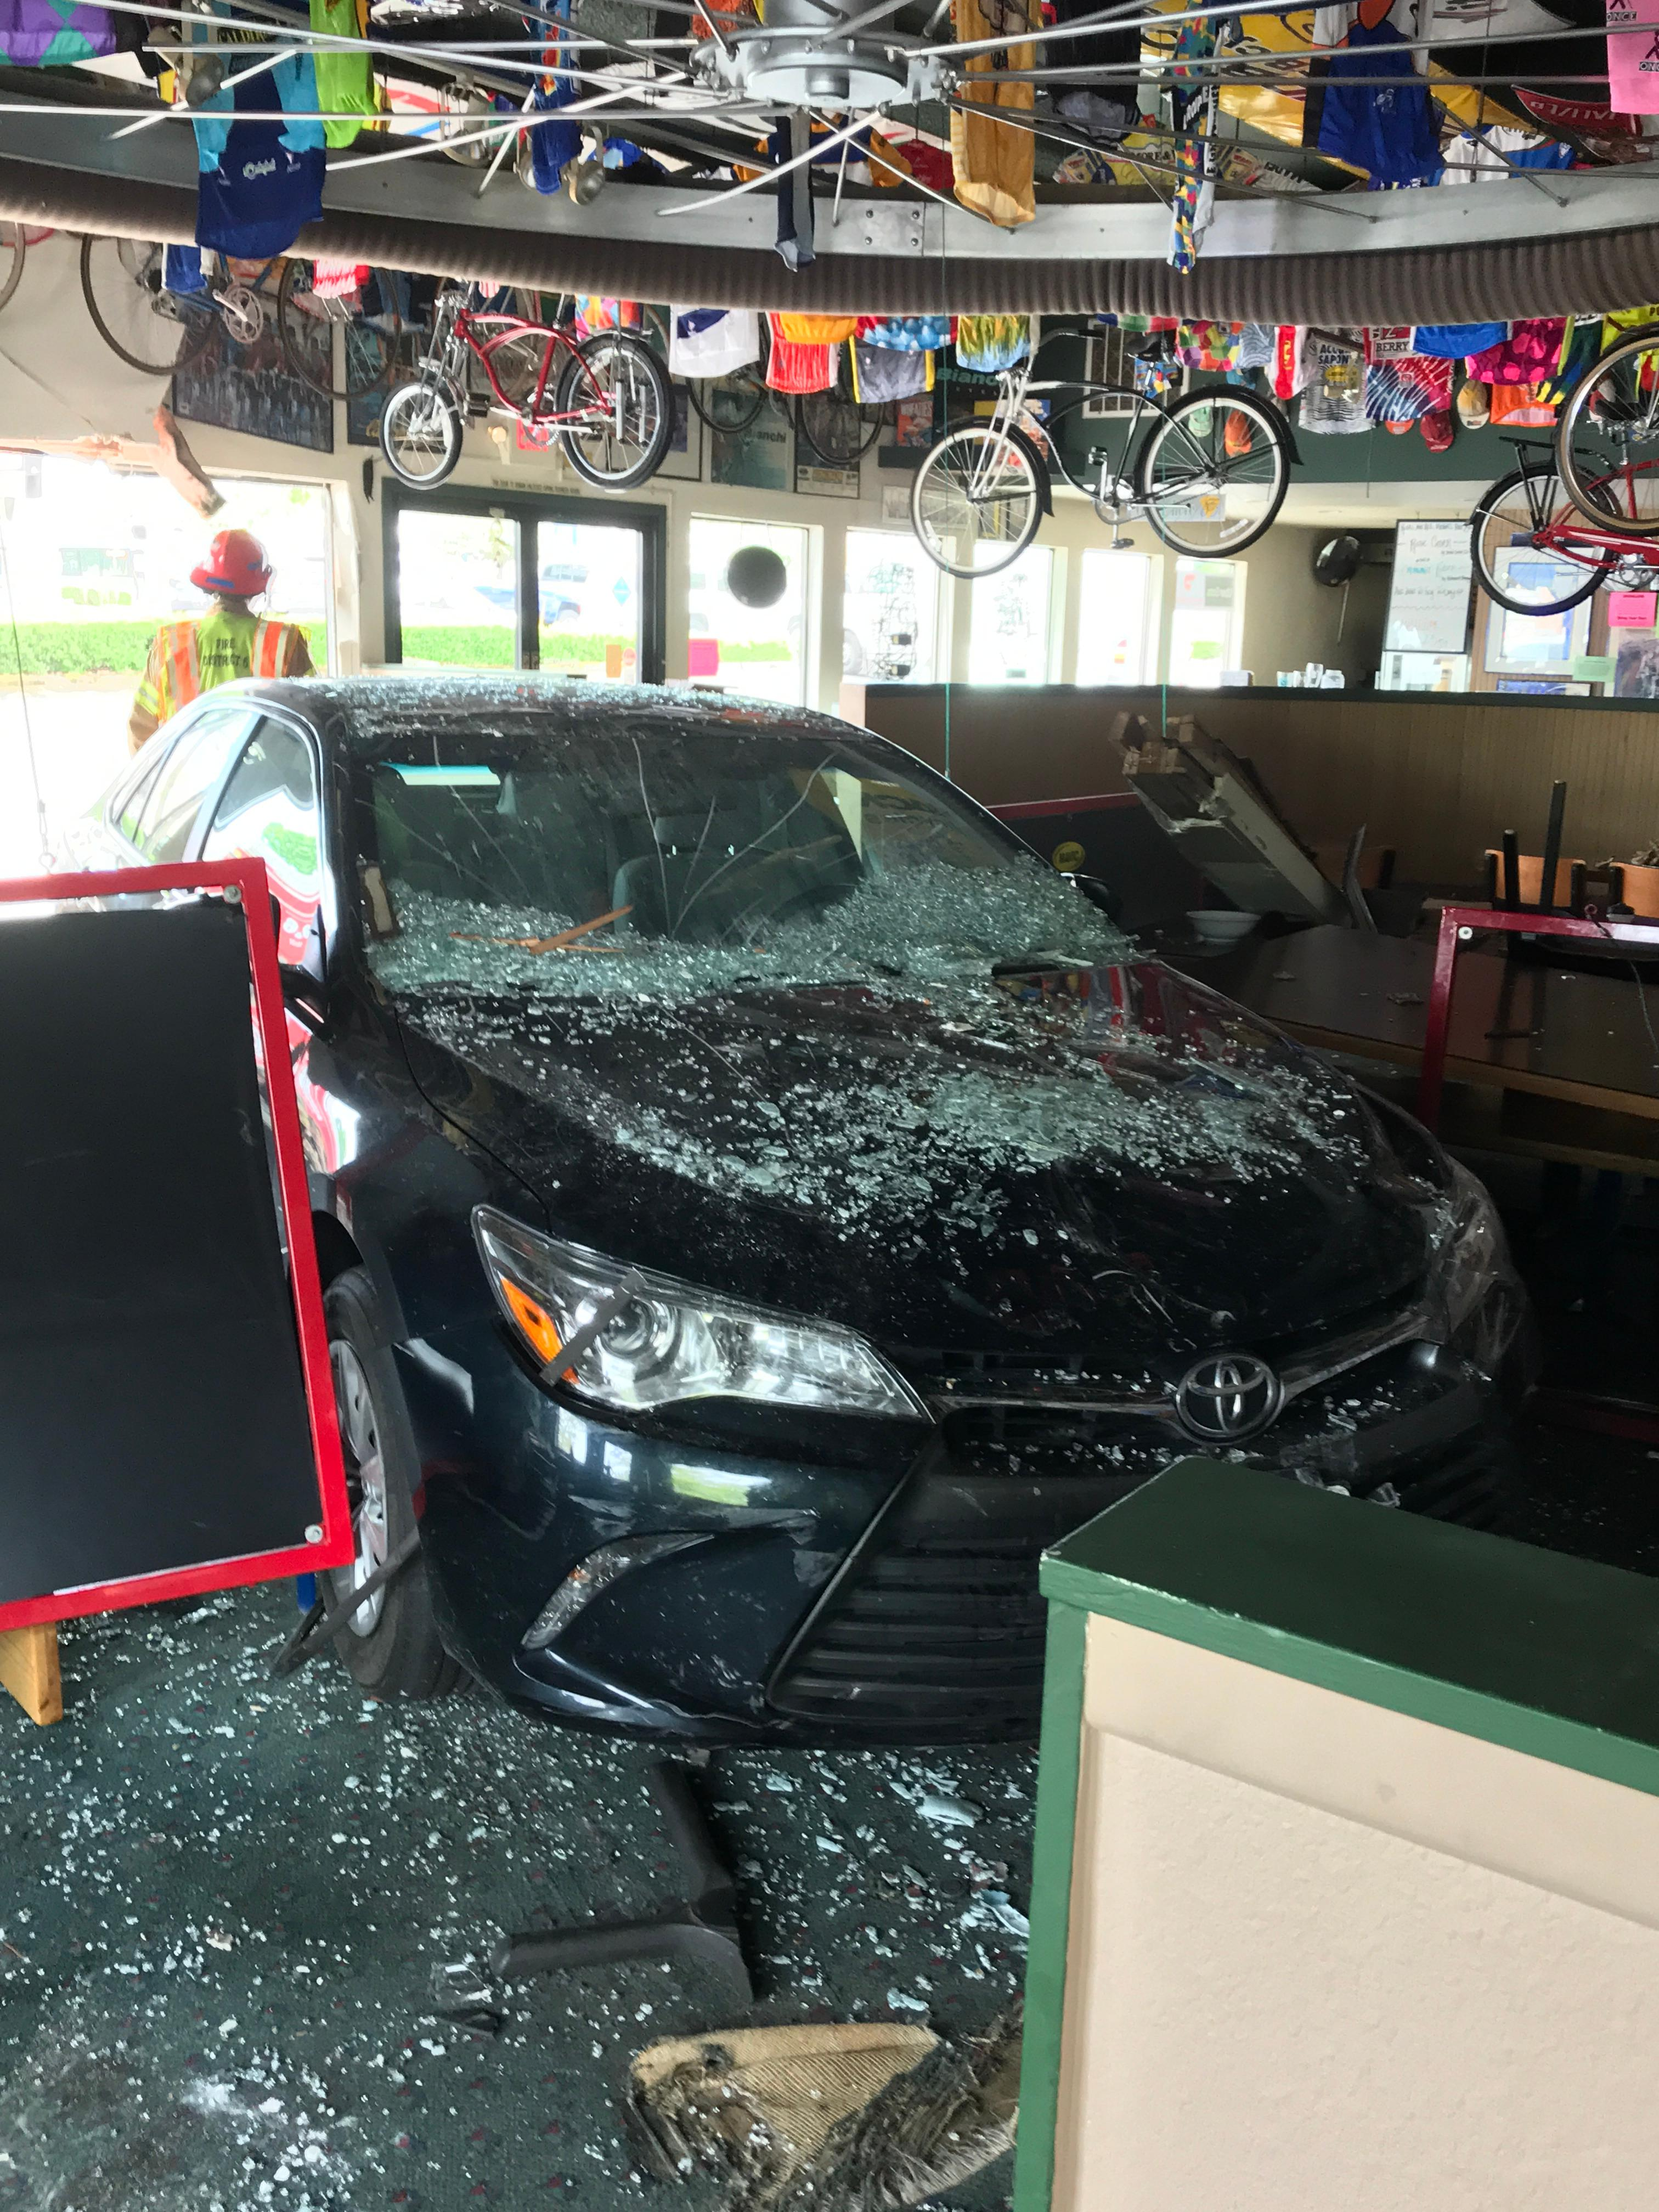 Driver crashes into Hazel Dell pizza shop - Clark County Fire District image - 5.jpg